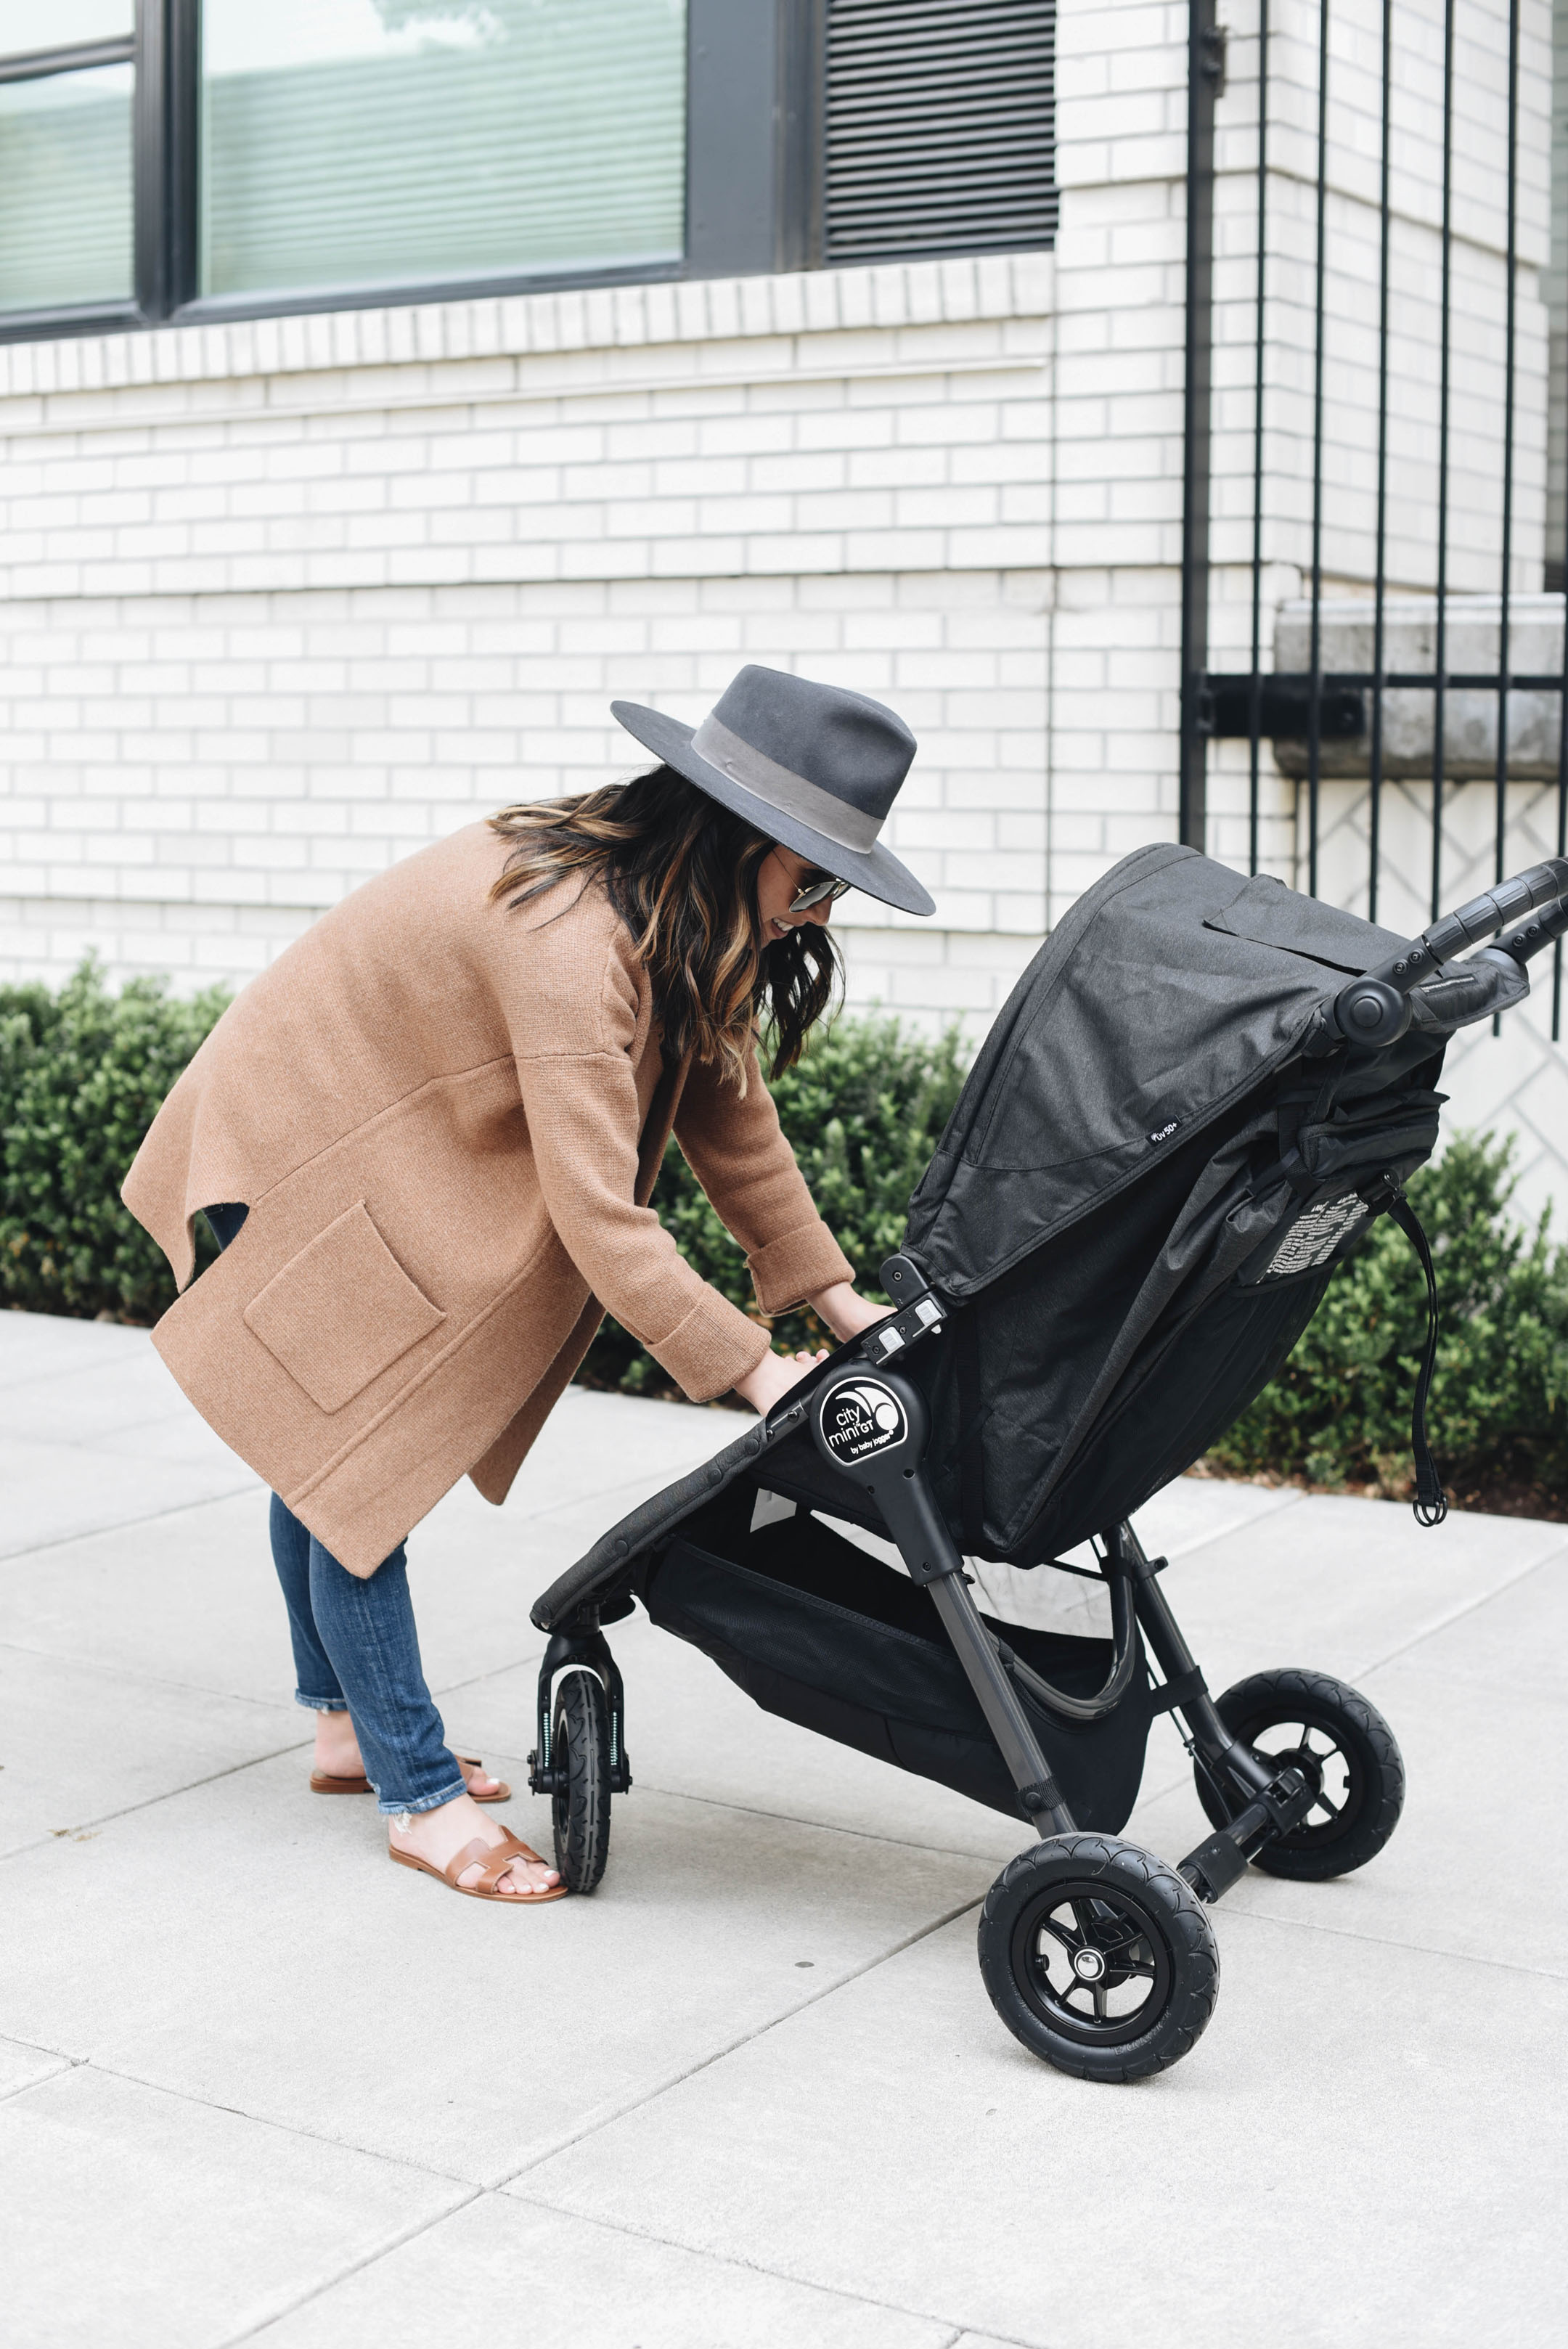 Baby Jogger City Mini Gt Anniversary Edition Stroller Review